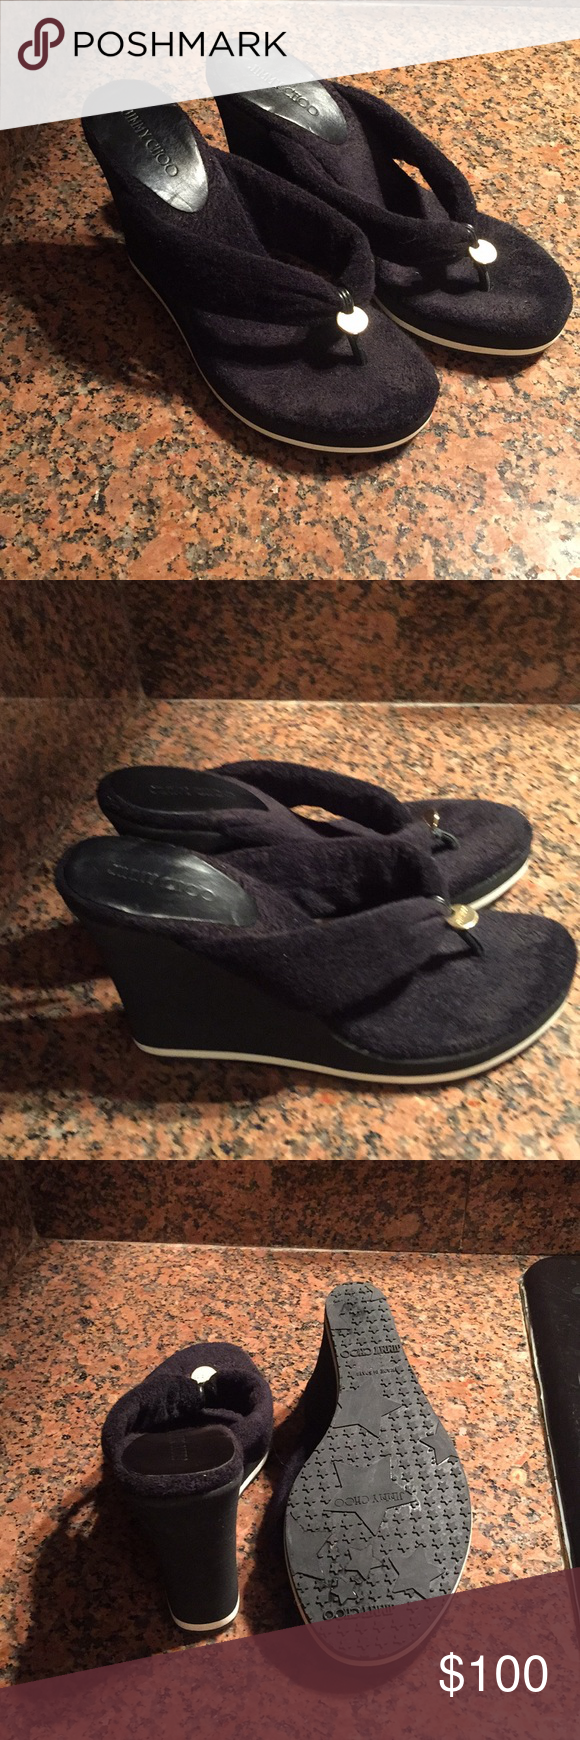 af0ae25907c8 Terry cloth thong sandals size 38!! Black terry cloth Jimmy Choo thong  sandals with gold - tone logo!! Great conditions.. Jimmy Choo Shoes Sandals